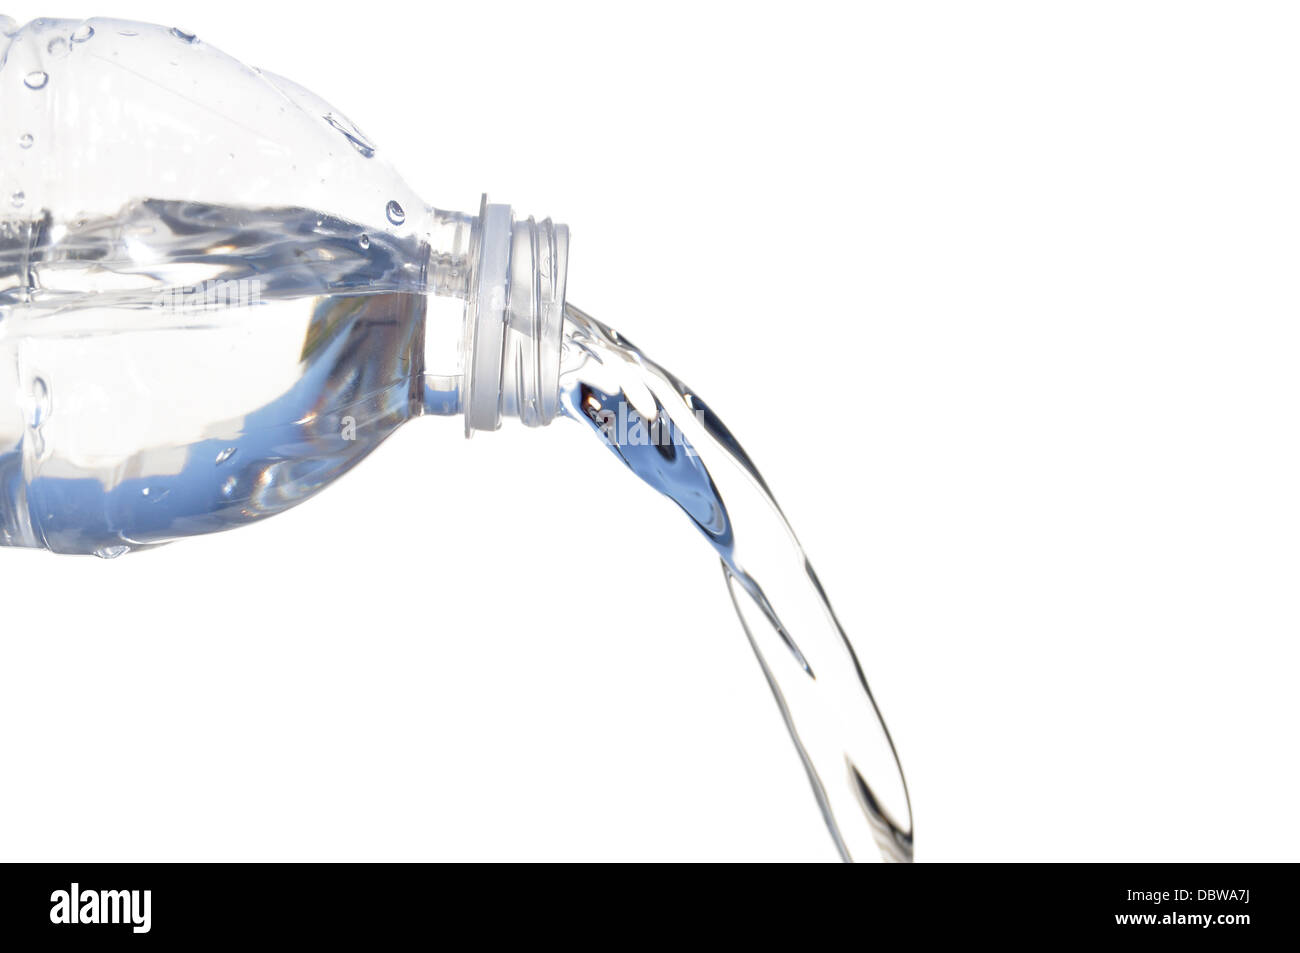 Water pouring out of plastic bottle isolated on White - Stock Image